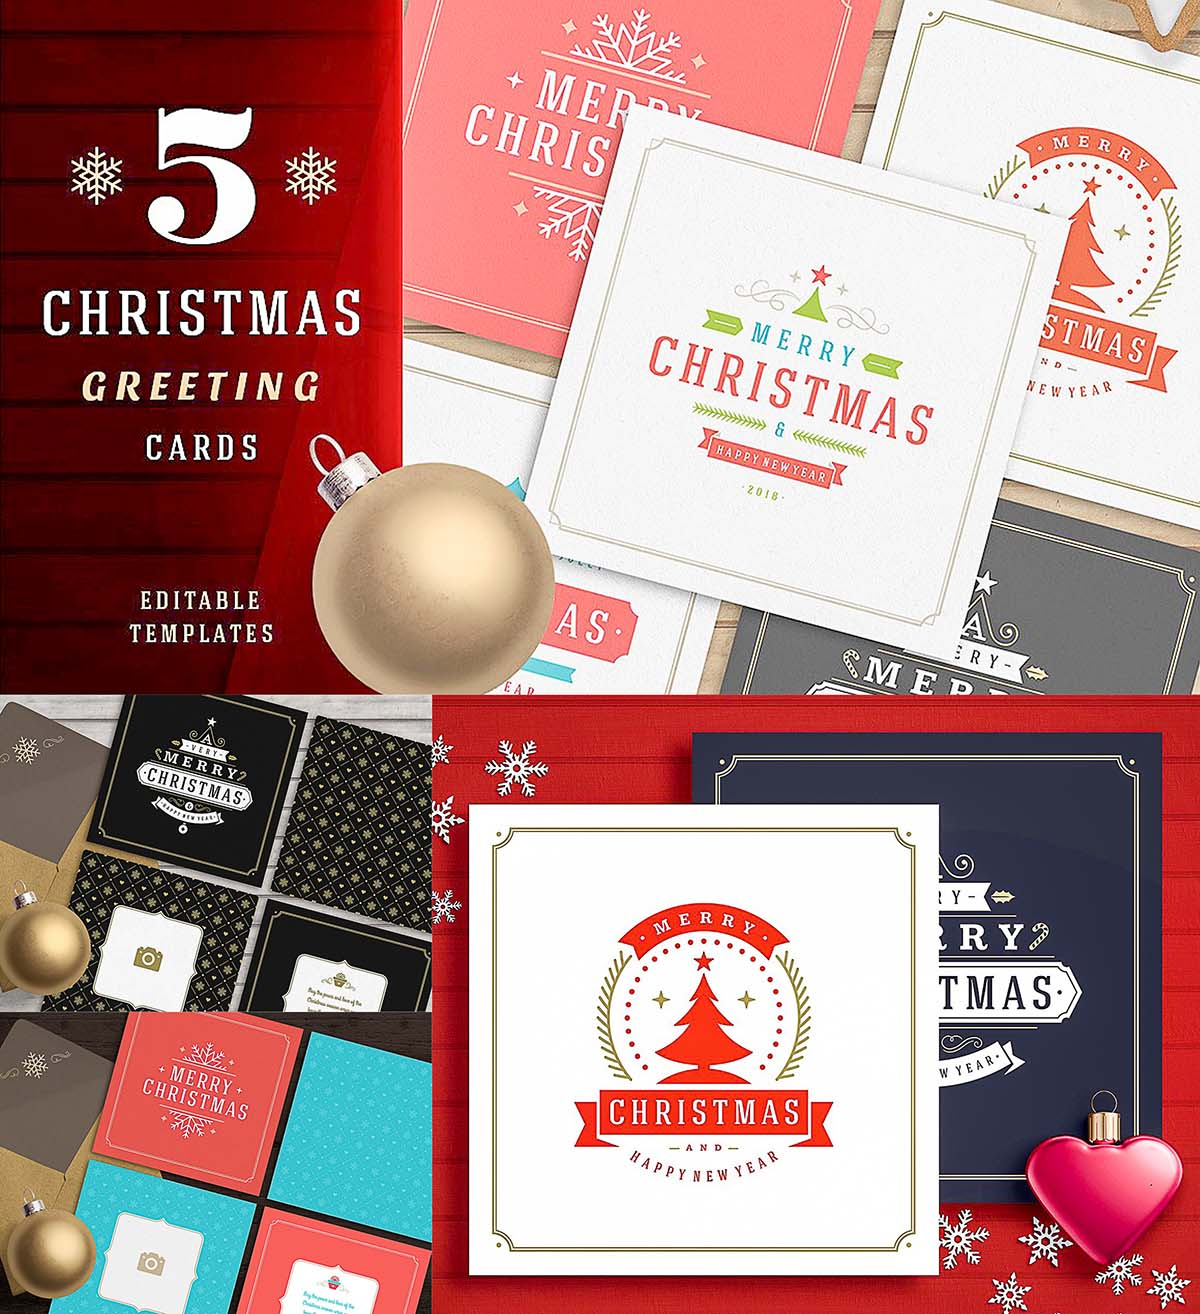 5 Christmas Greeting Cards Free Download